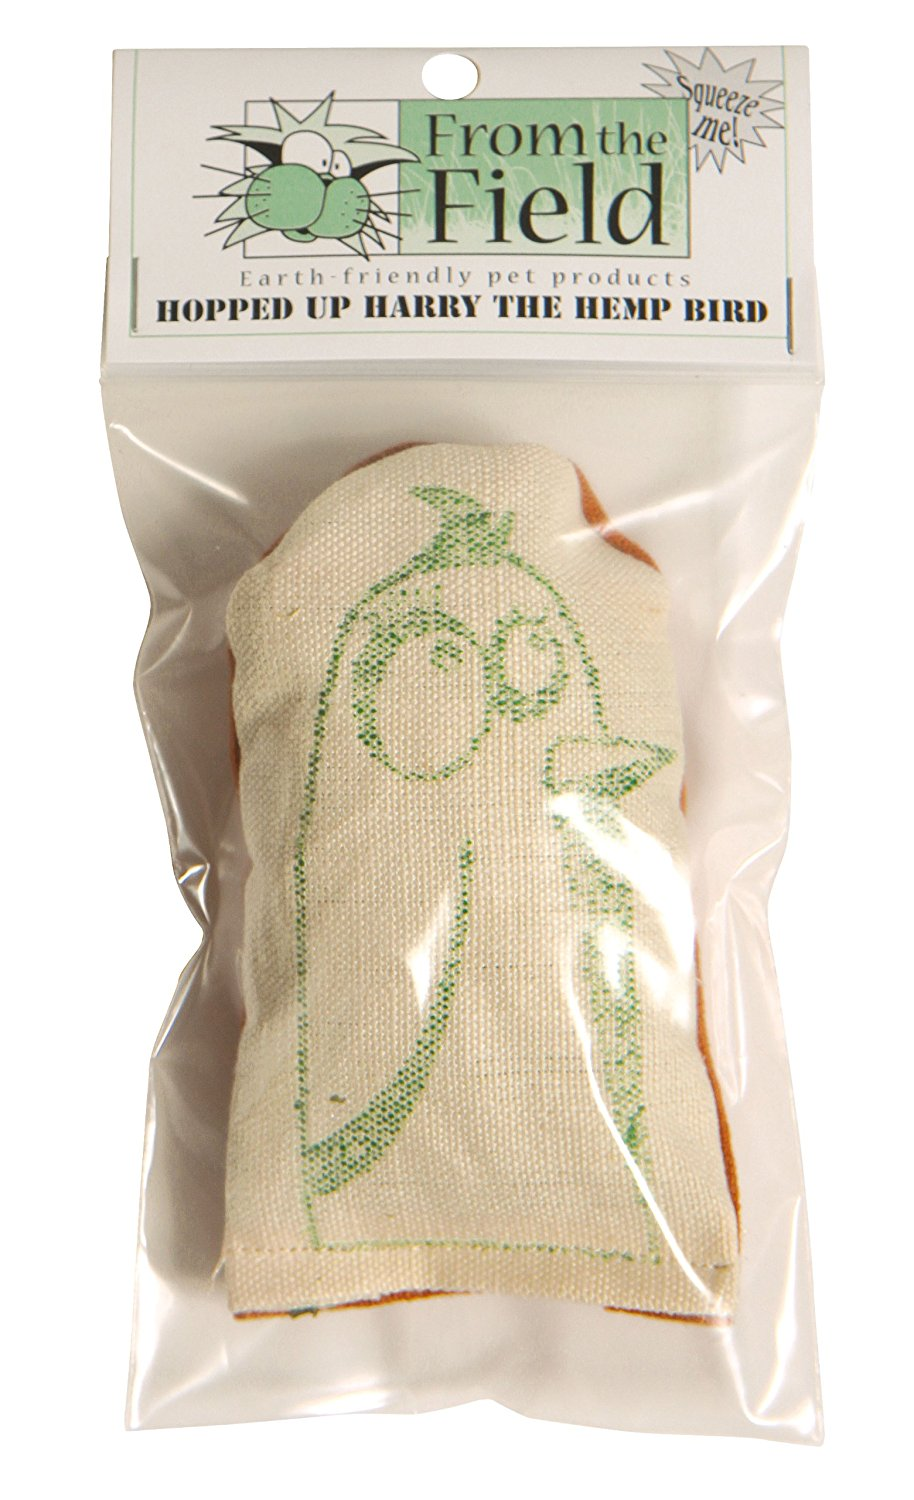 Hopped Up Harry The Hemp Bird Catnip Toy, Made in USA By From The Field by